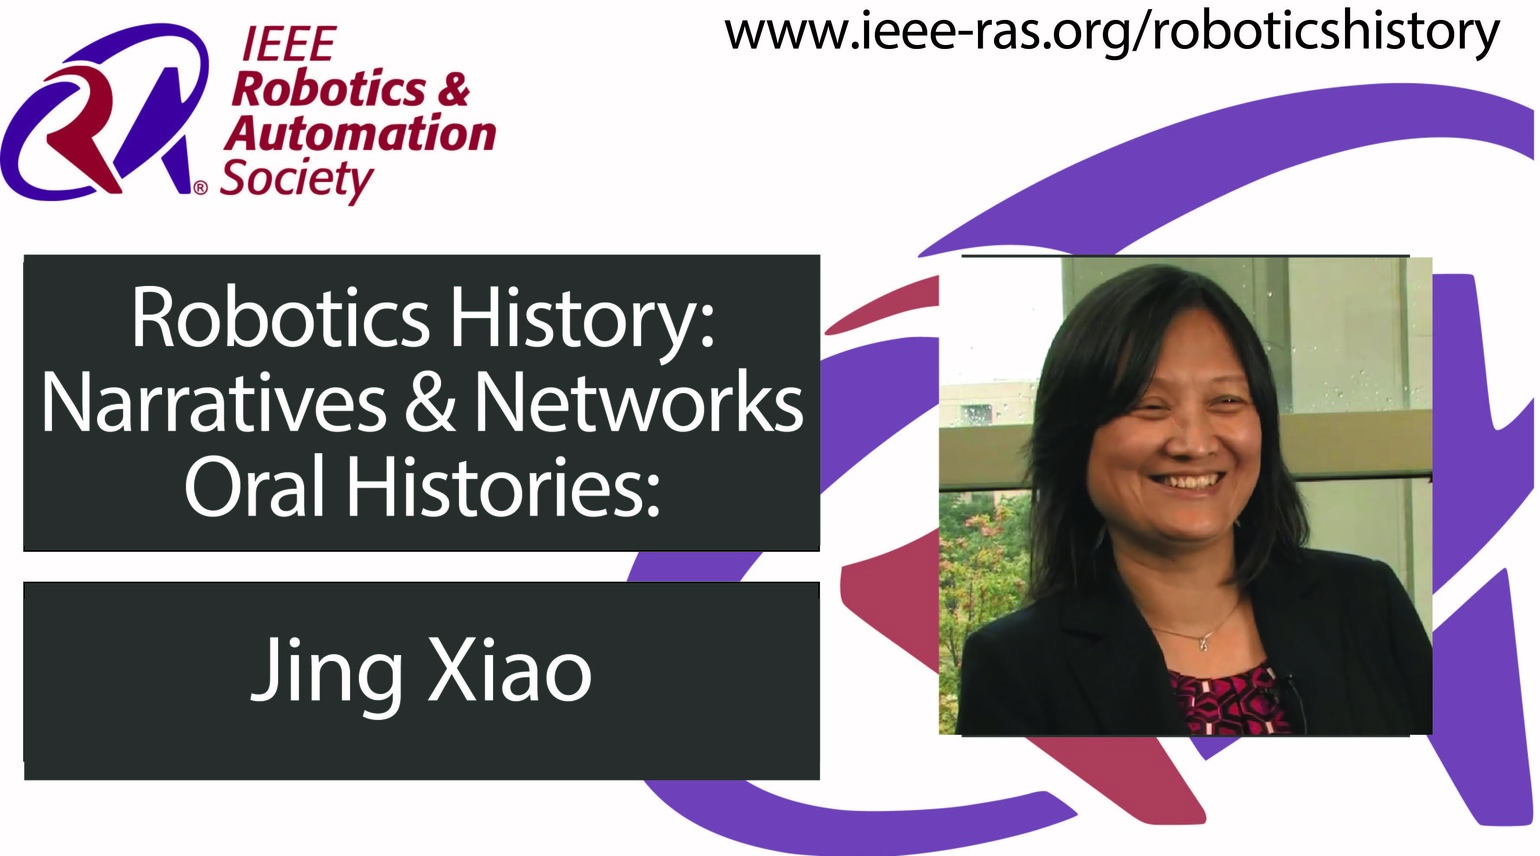 Robotics History: Narratives and Networks Oral Histories: Jing Xiao